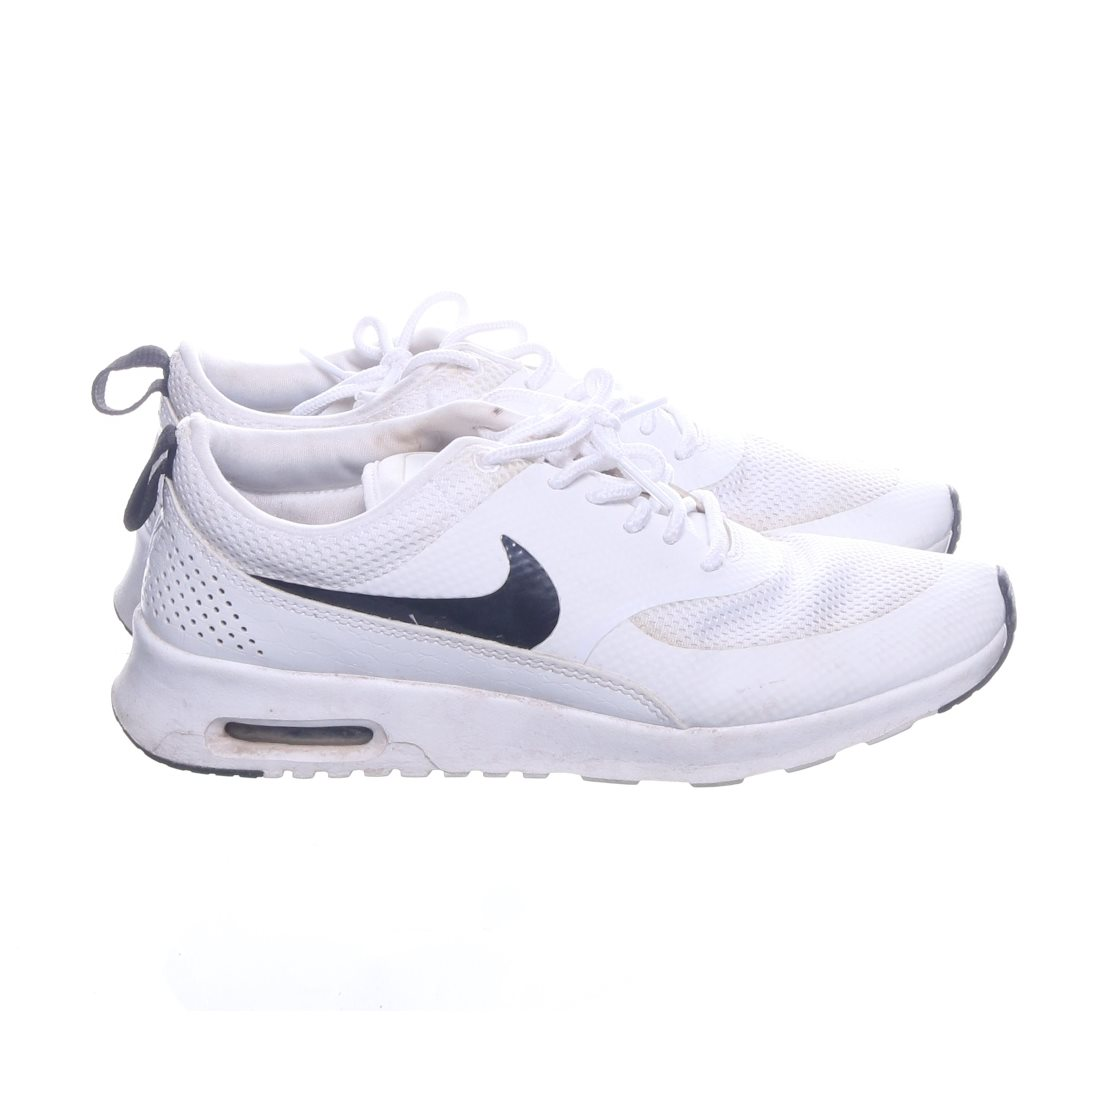 new concept 011e9 3f2bd Nike, Sneakers, Strl: 39, Air Max Thea, V.. (343903842) ᐈ Sellpy på ...